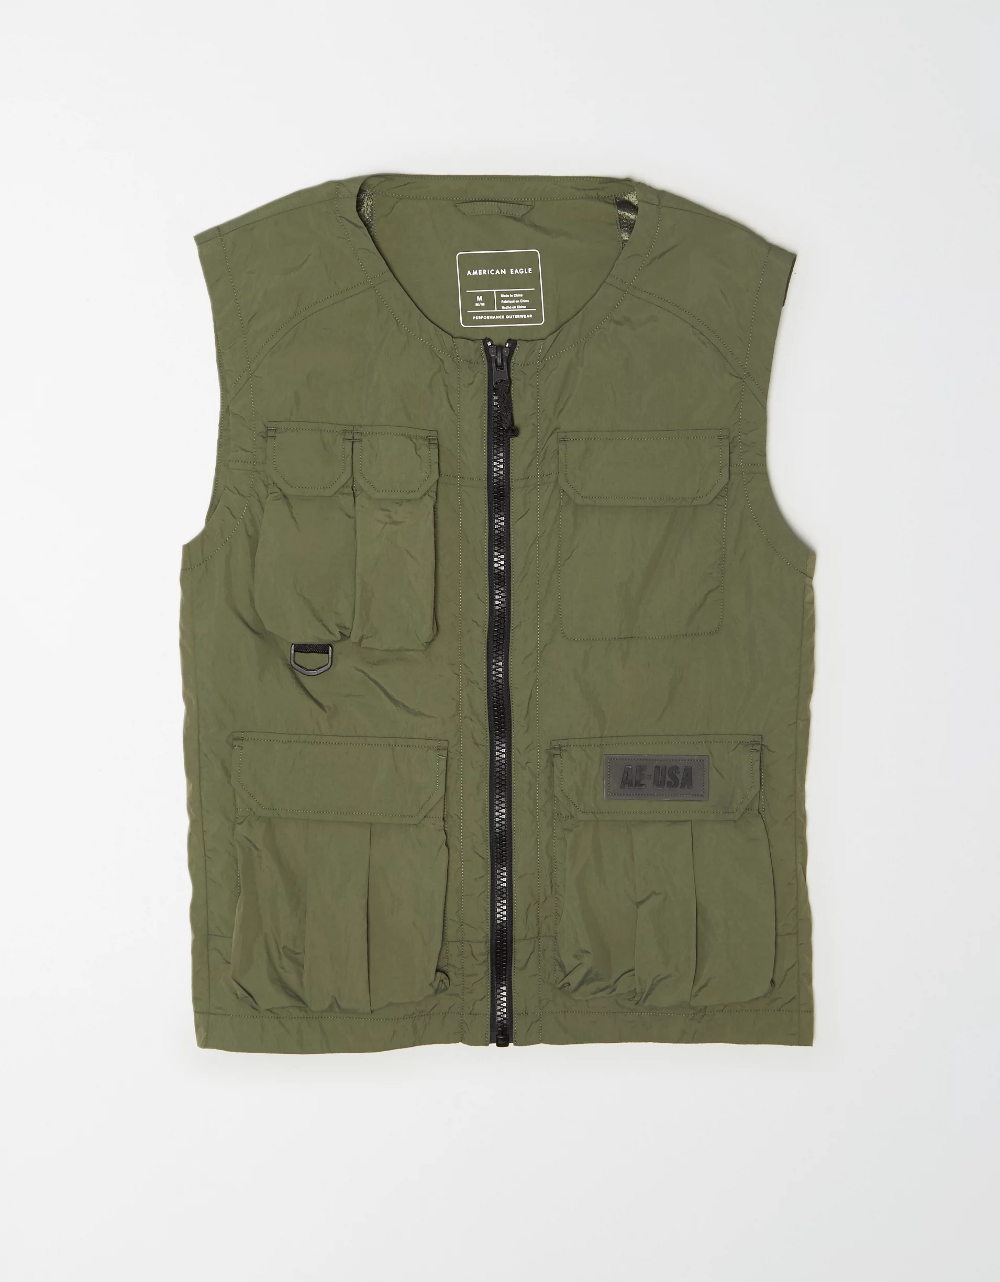 Ae Workwear Vest Mens Outfitters Patches Fashion Work Wear [ 1282 x 1000 Pixel ]